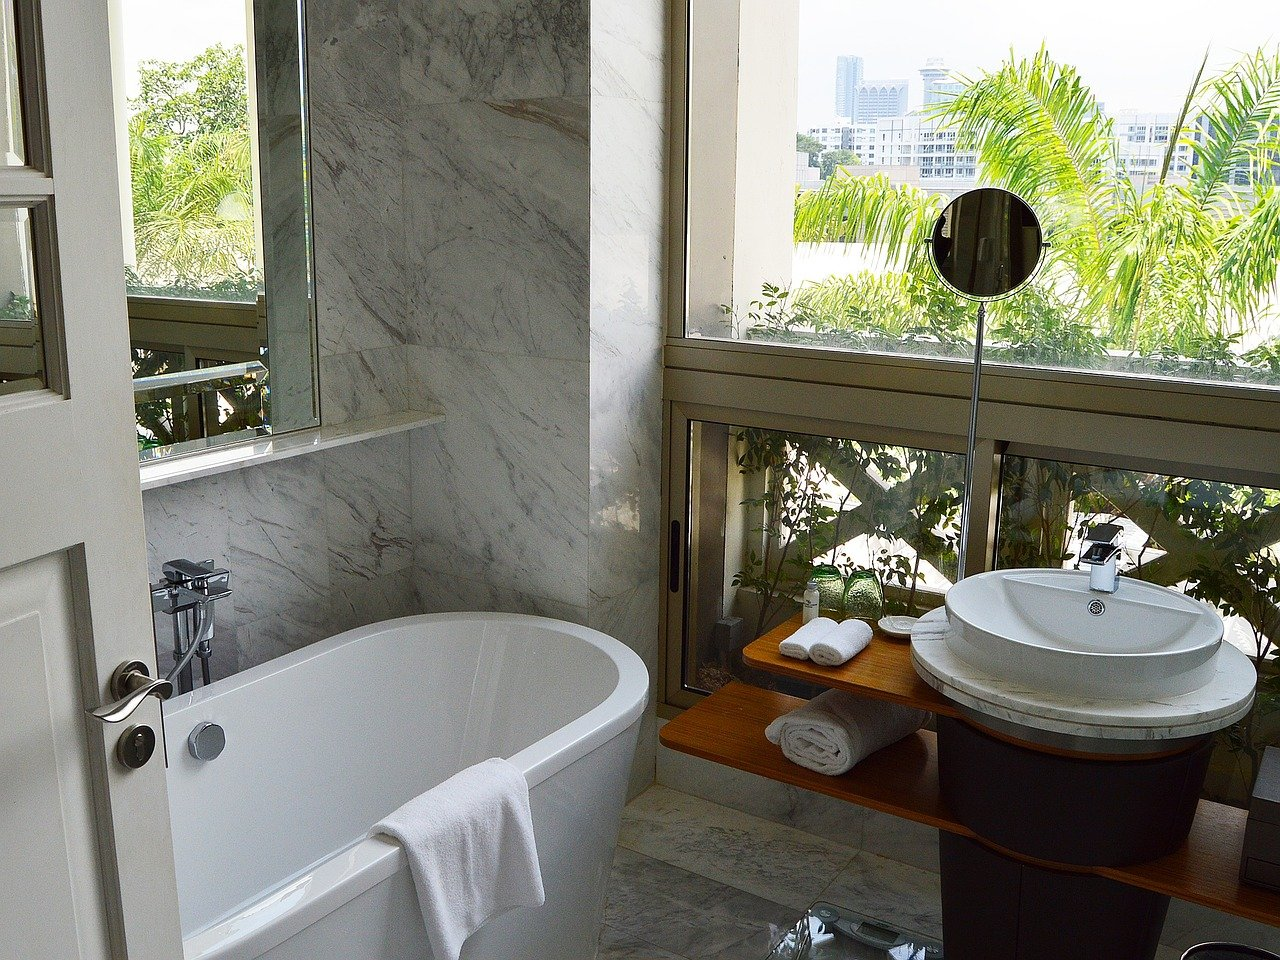 Tips on How to Spruce Up Your Small Bathroom 5